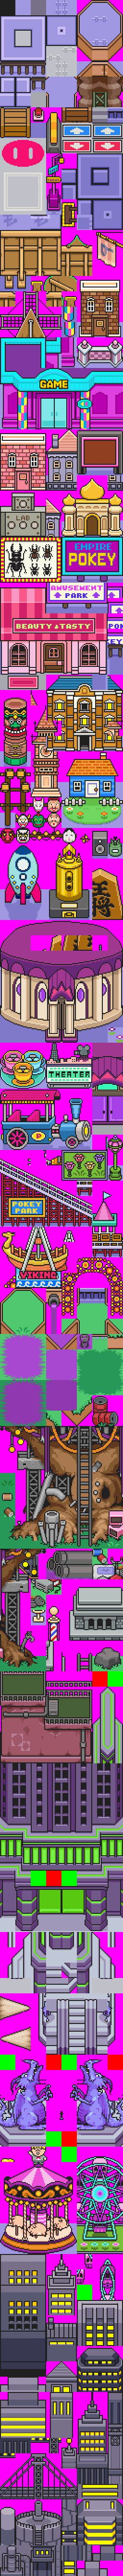 Ranger's Mother 3 Tileset Bonanza (yes there will be